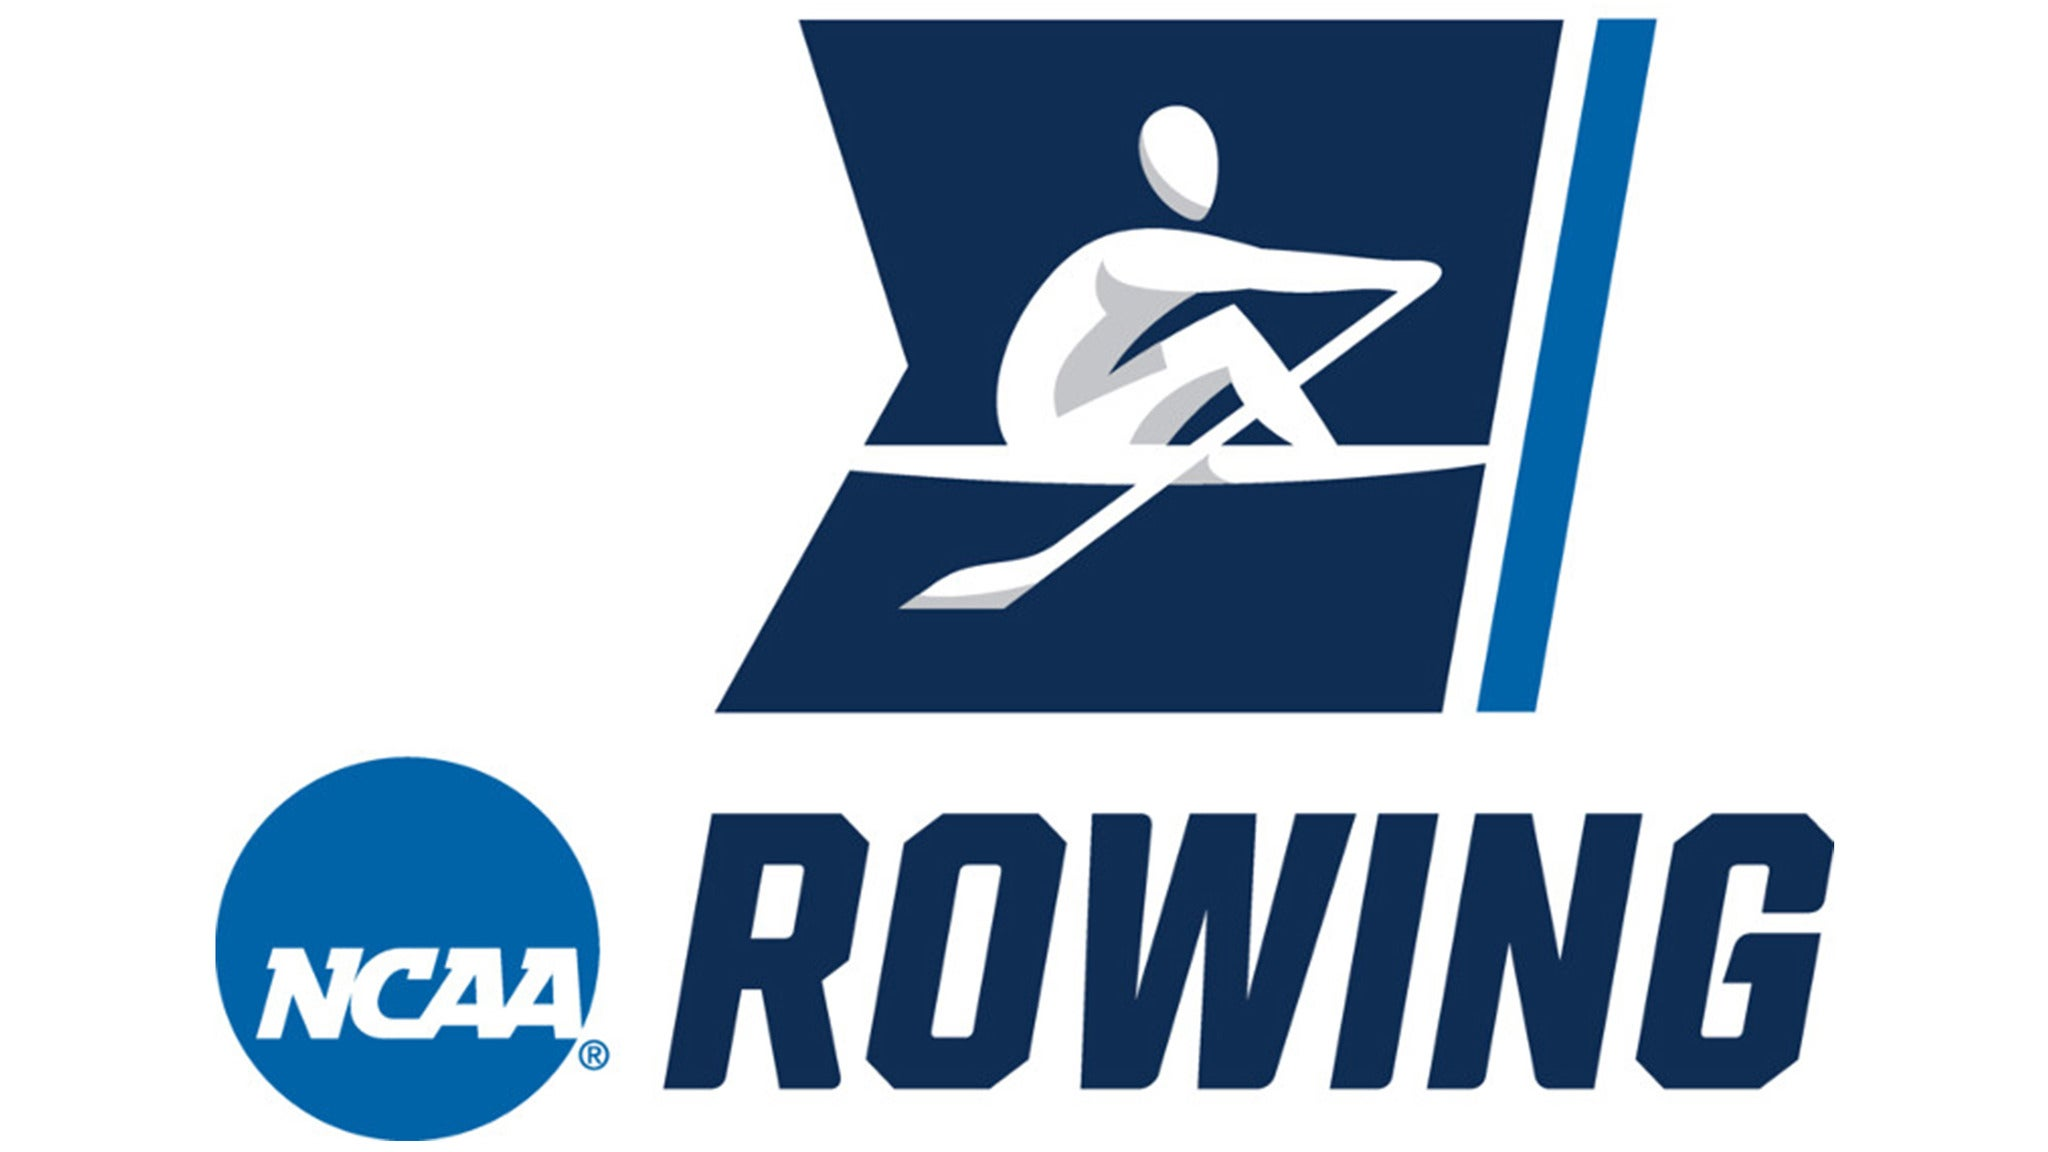 2019 NCAA Rowing Championships - All-session